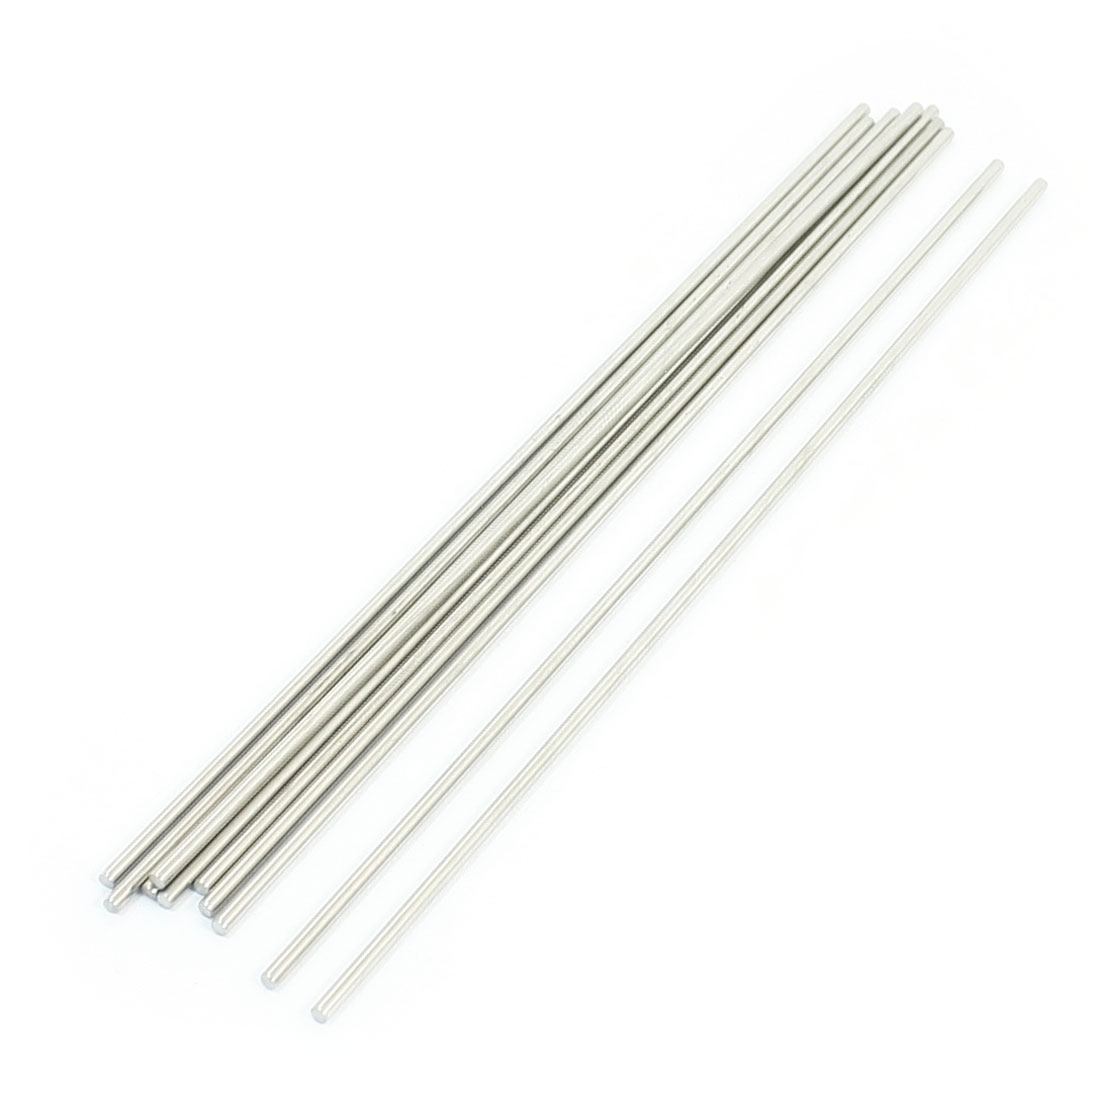 10Pcs 160 x 2.5mm Stainless Steel Cylinder Linear Rail Round Rod Axle